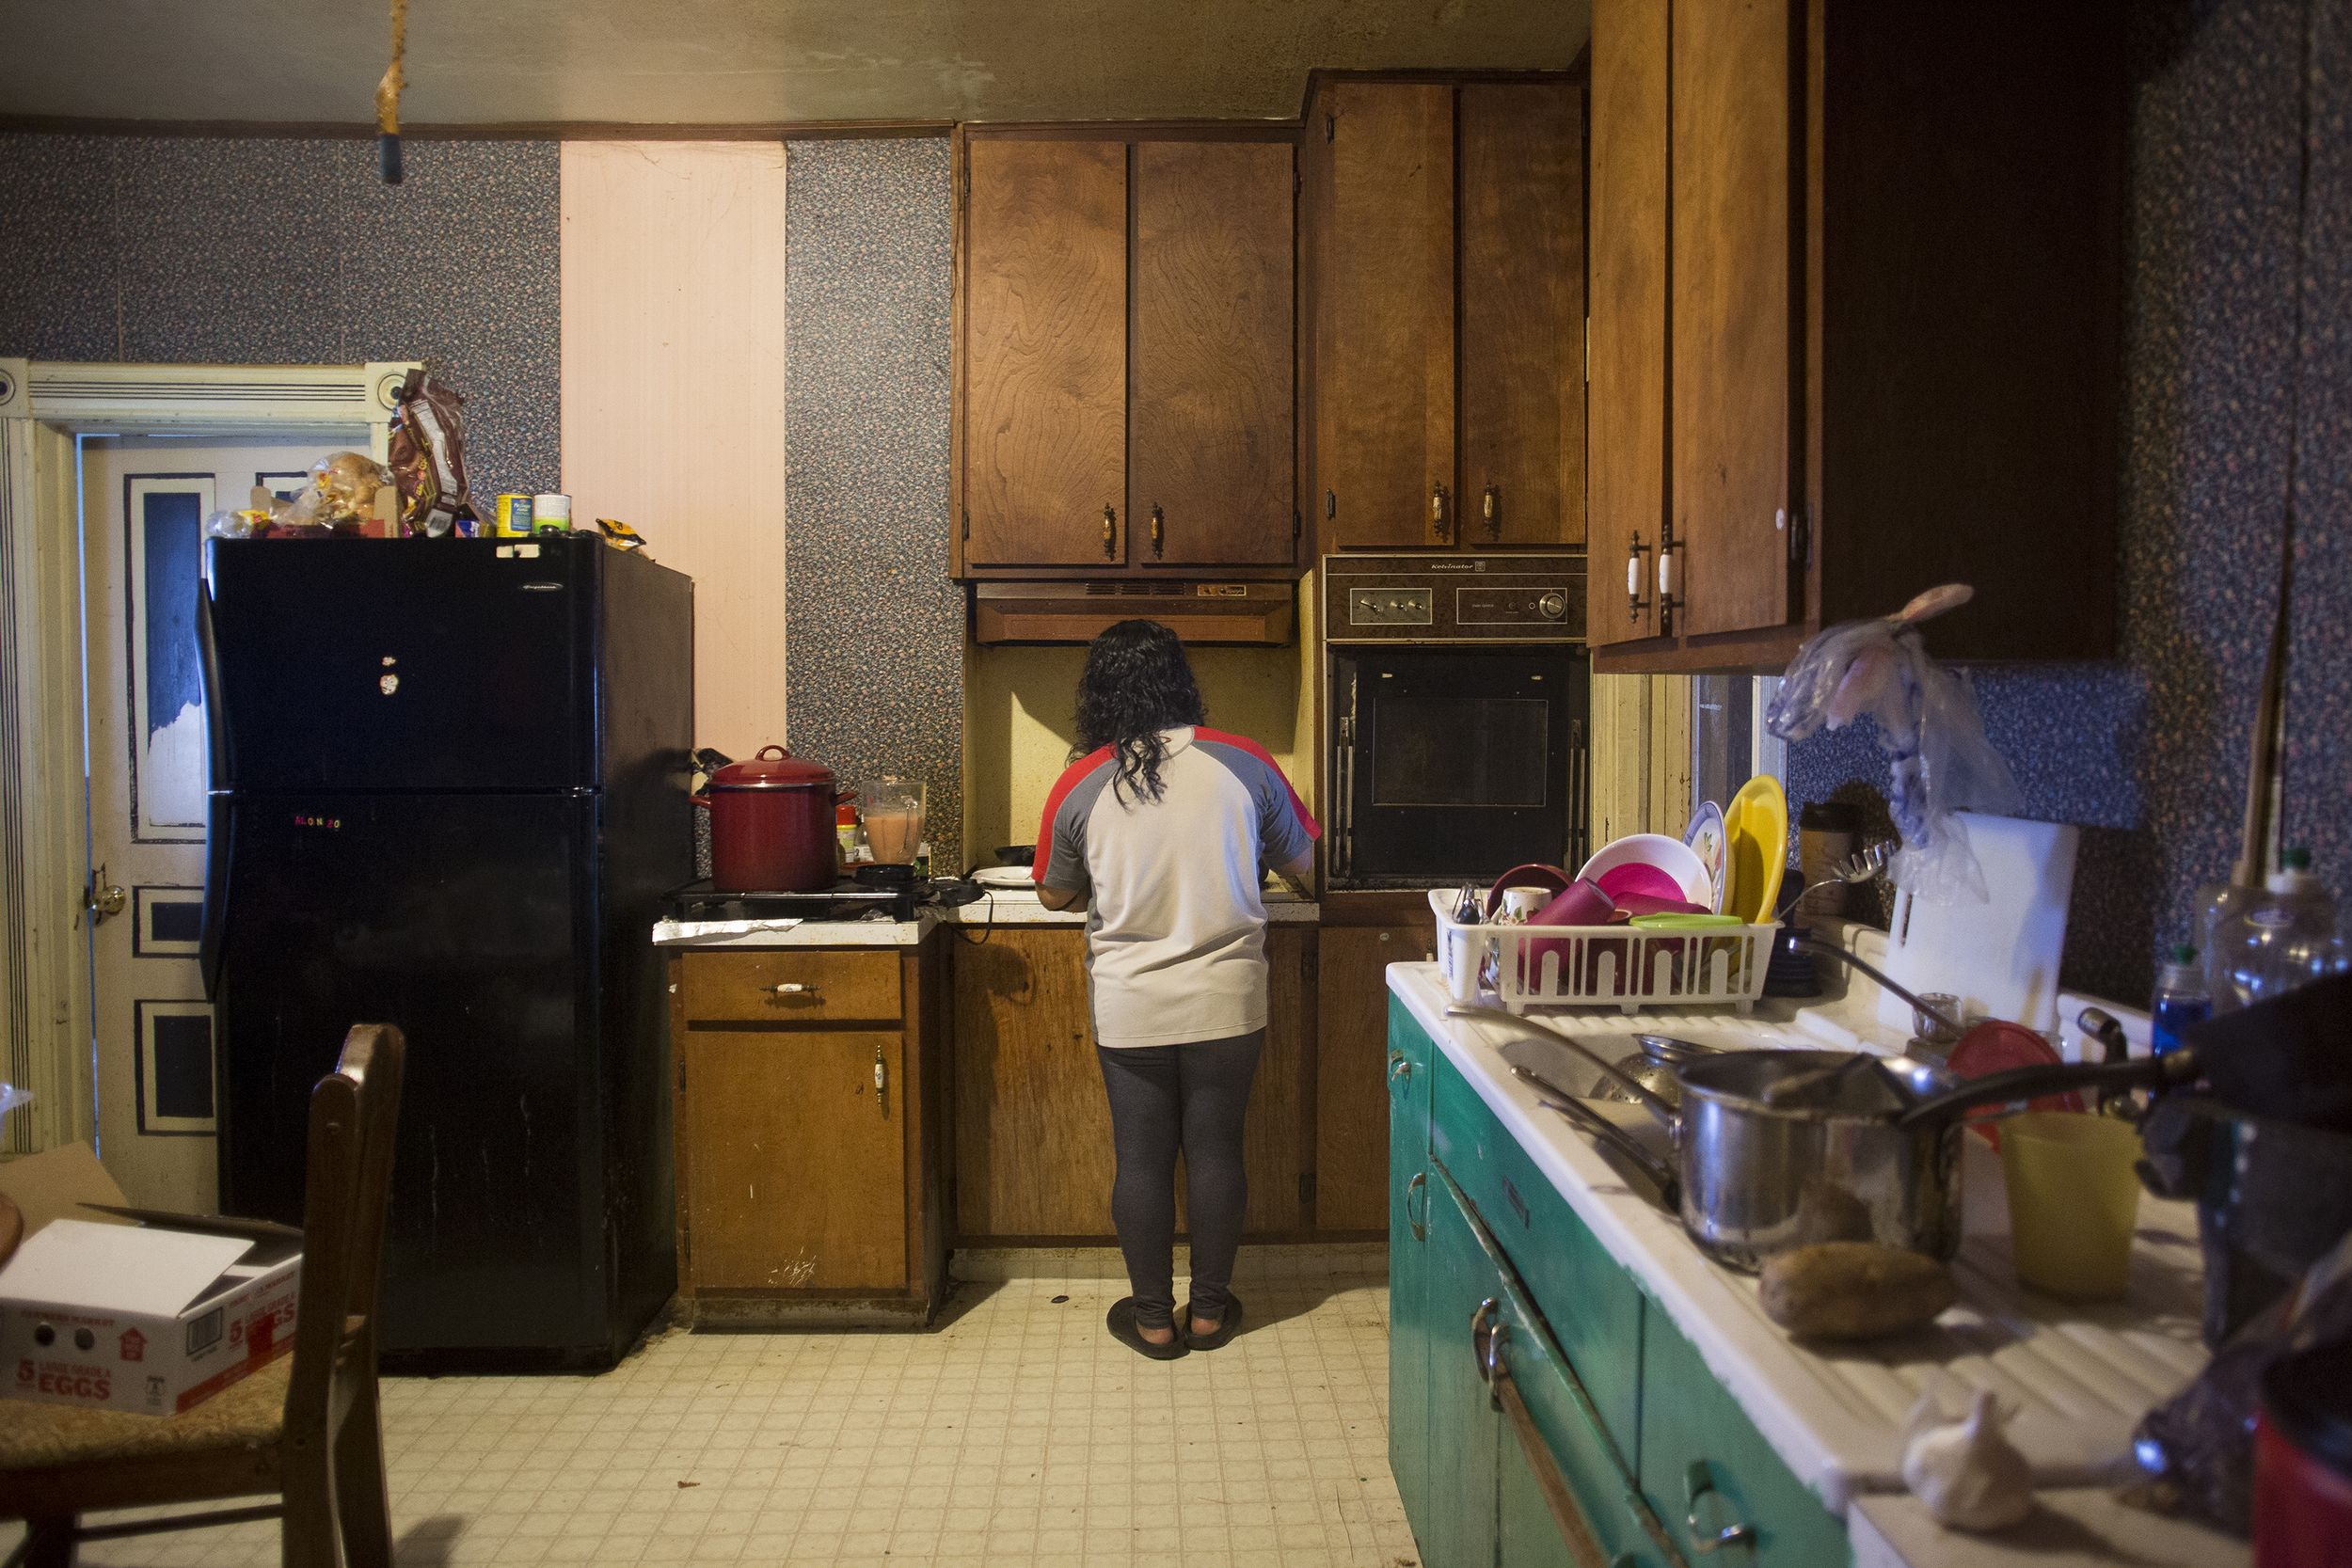 Lucero, 29 cooks for her brother, boyfriend, and cousin in their home that they all share a mile away from the farm. They have their shifts set up so they all have a break together in the middle of the day from 11 a.m. to 6 p.m.